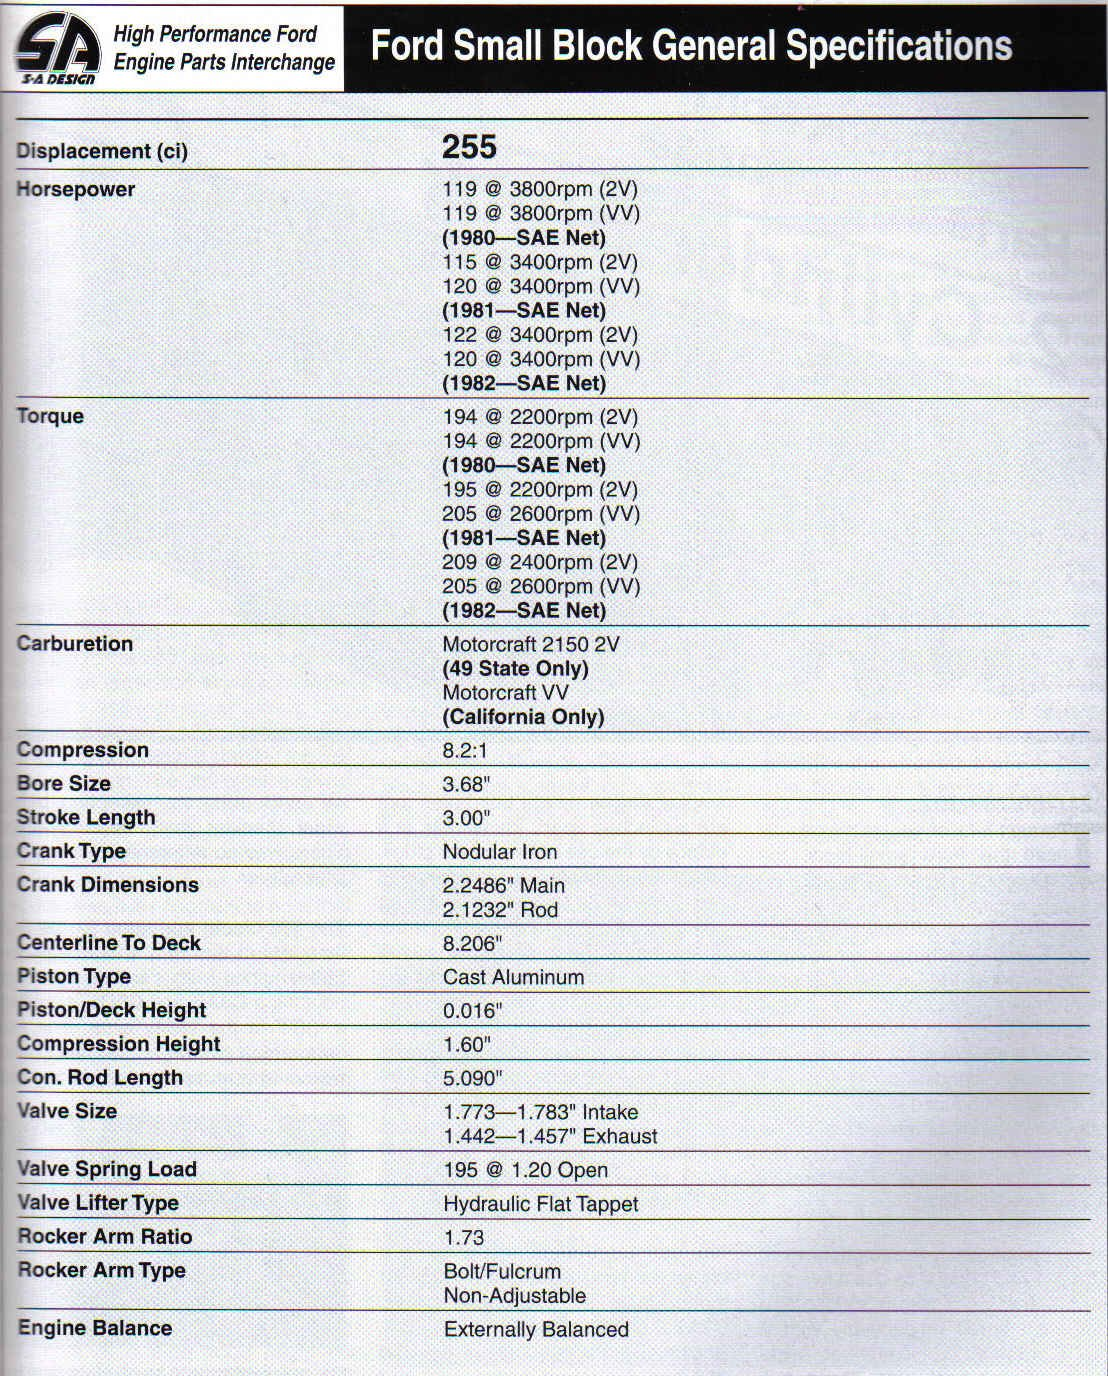 Ford Small Block Casting Numbers-general-specifications-5.jpg